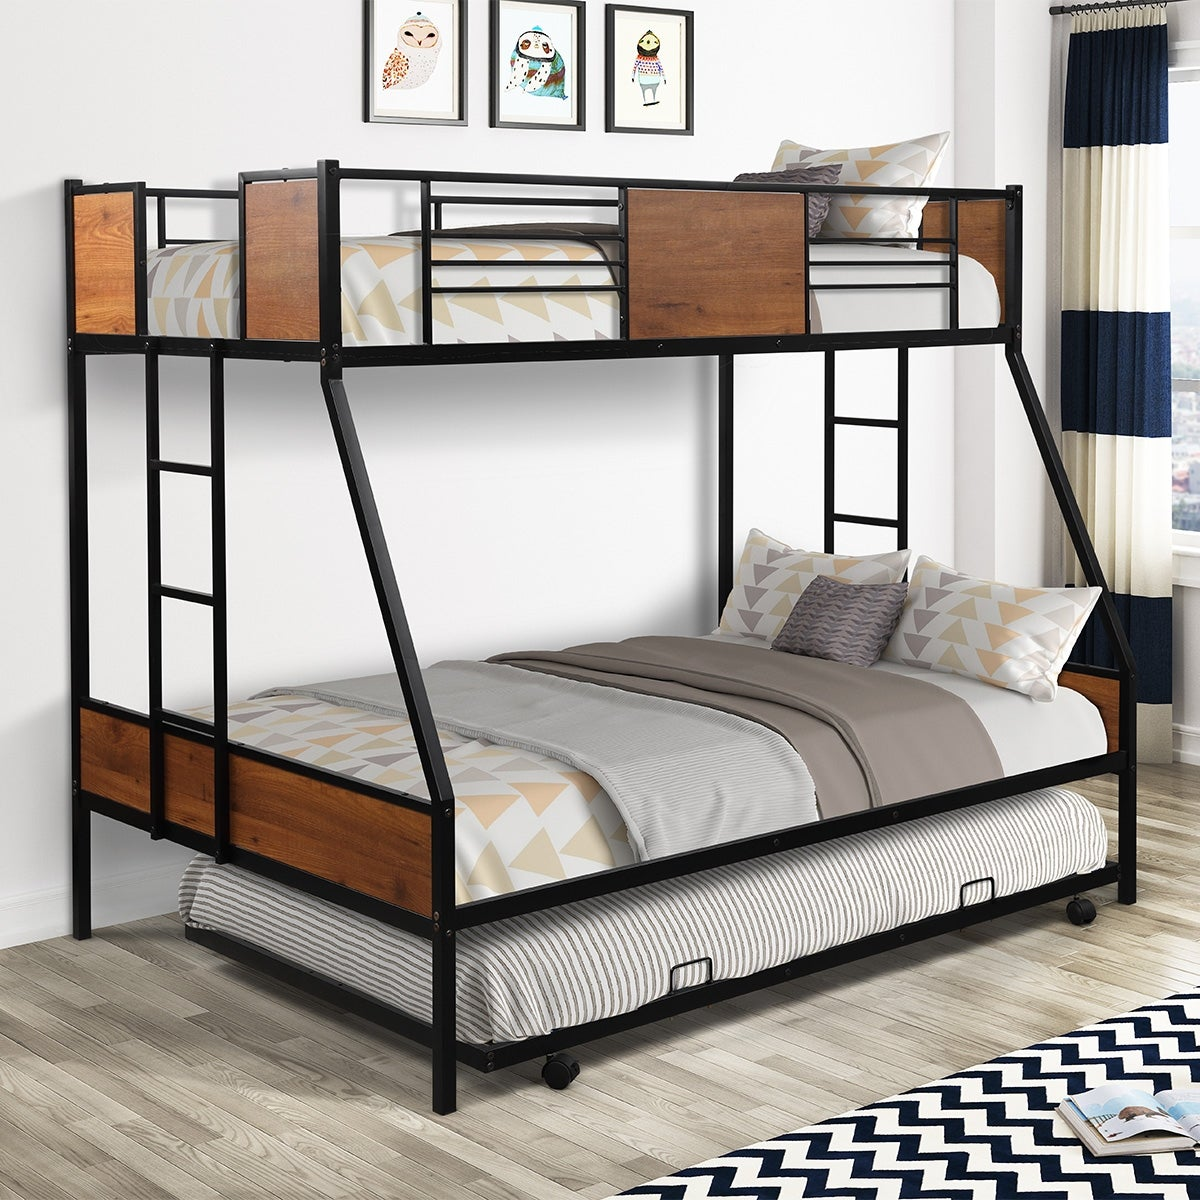 Merax Twin Over Full Metal Bunk Bed With Trundle Two Side Ladders On Sale Overstock 32465424 White